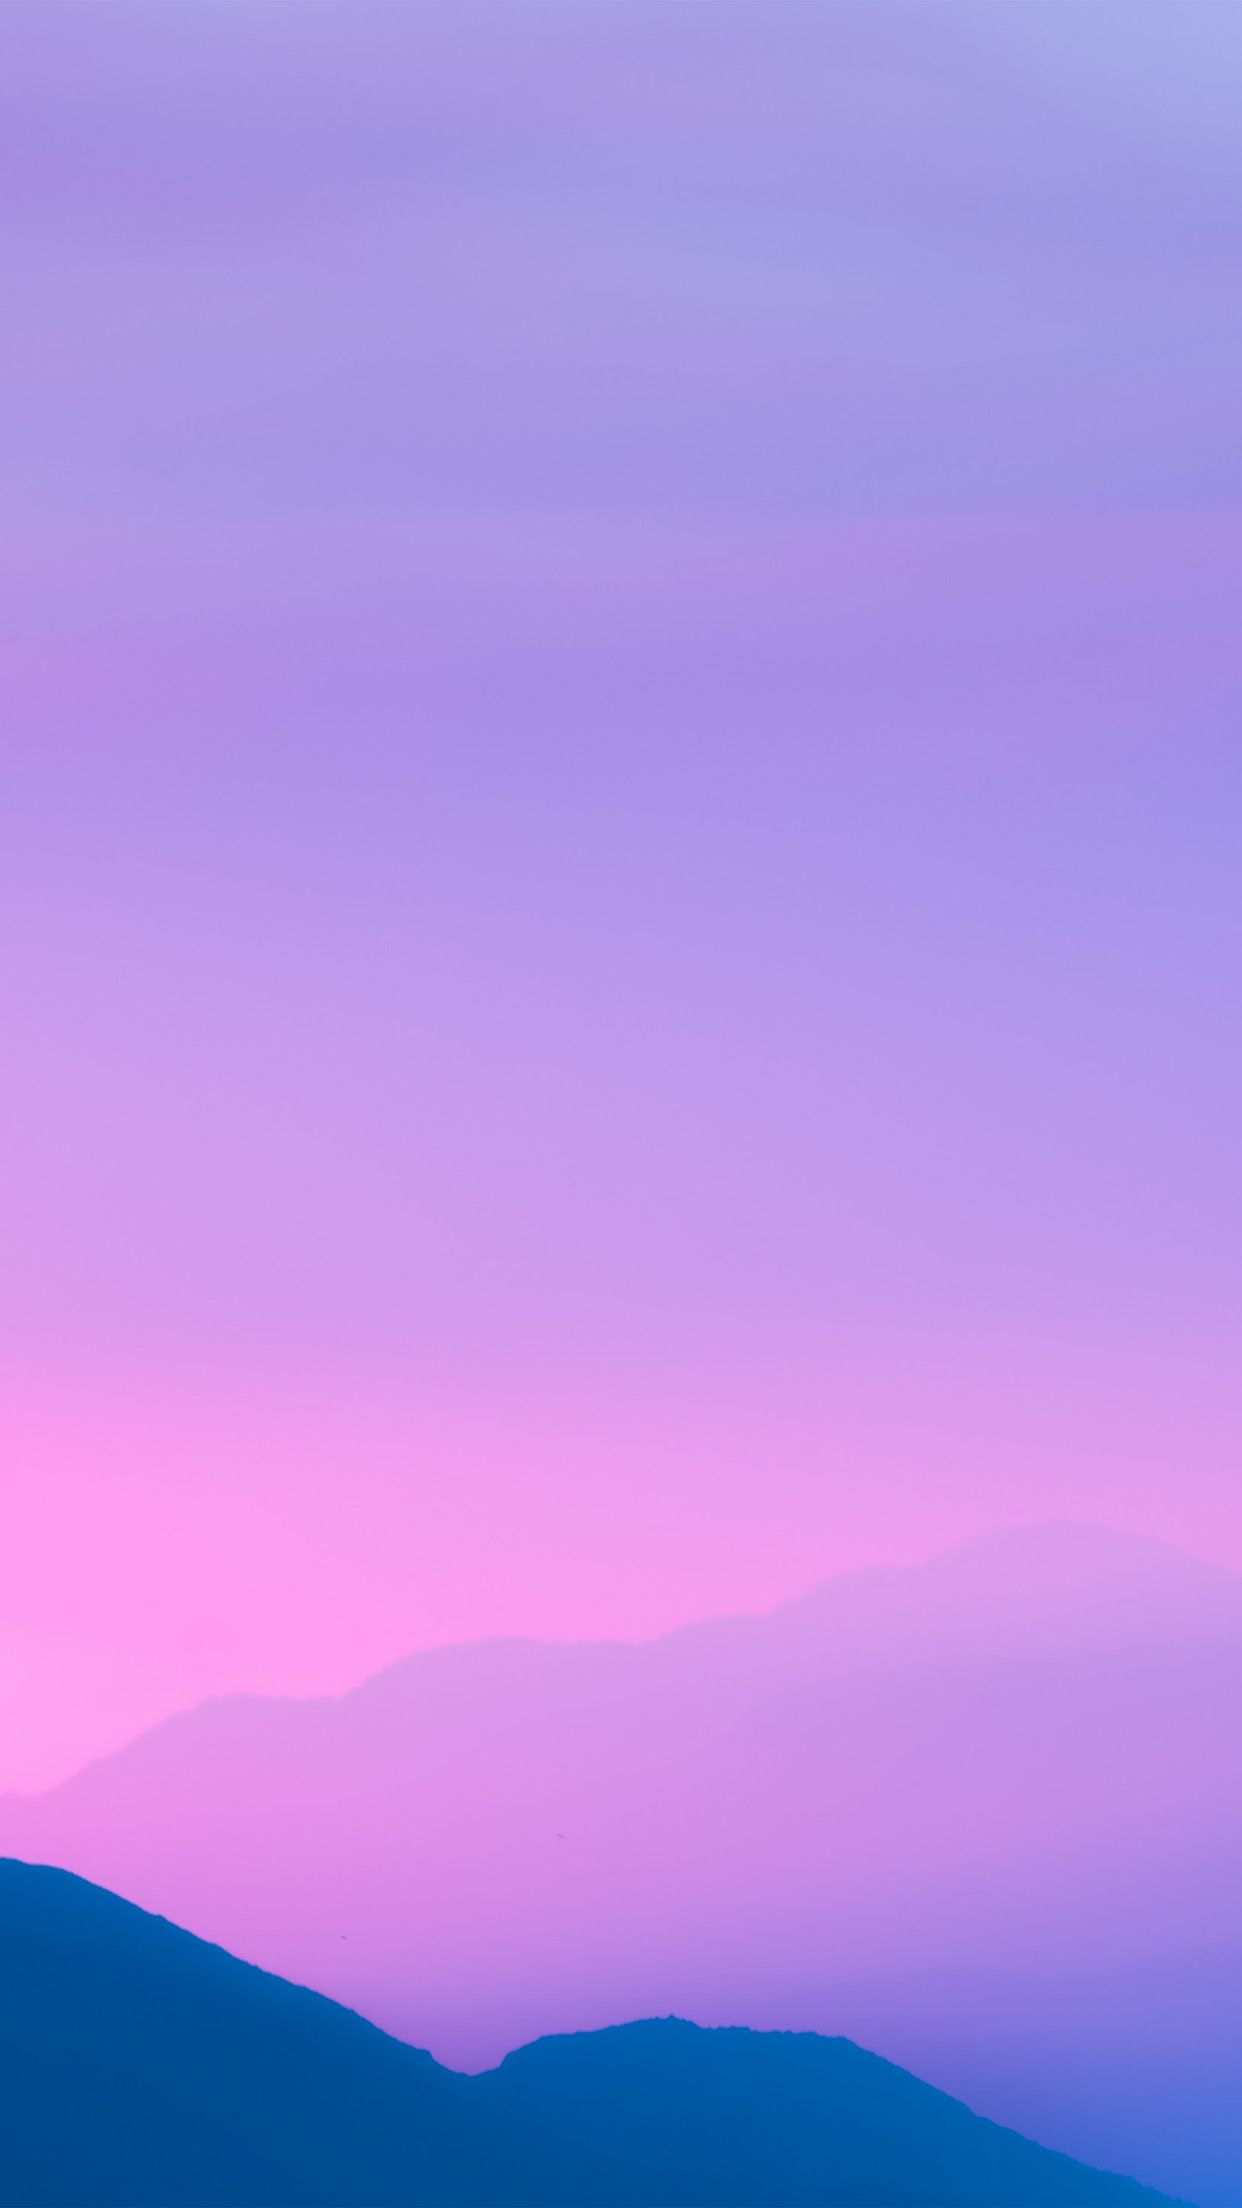 Purple Sunset Iphone Wallpapers Top Free Purple Sunset Iphone Backgrounds Wallpaperaccess